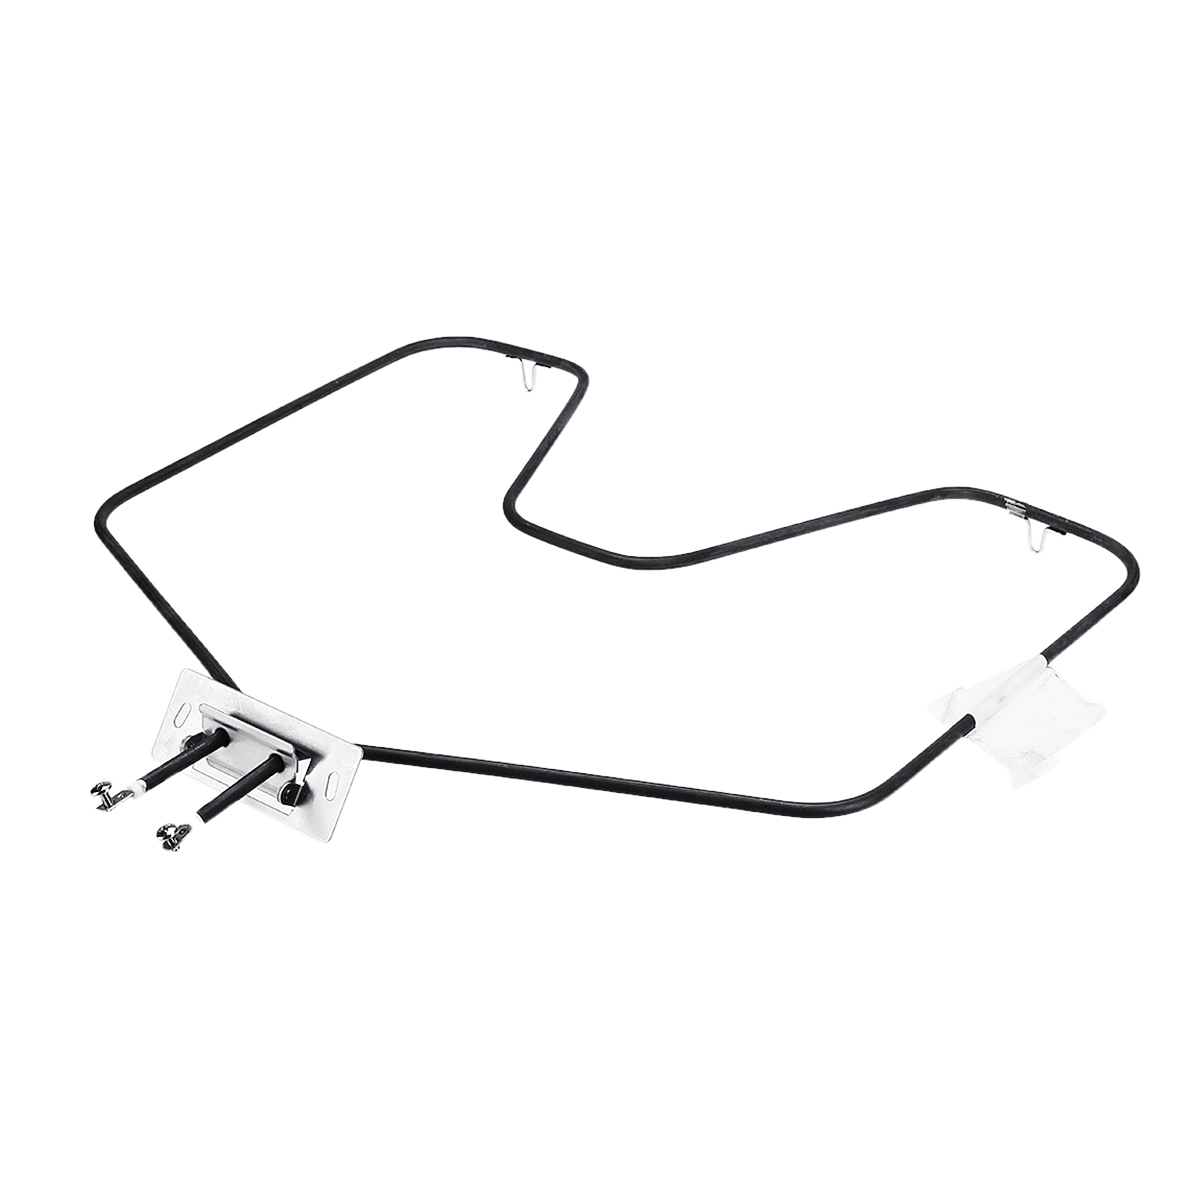 1750W Oven Bake Lower Heating Element For GE Hotpoint WB44X5082 AP2031084 PS249466 Oven Broil Heater Pipe|Oven Parts|Home Appliances - title=